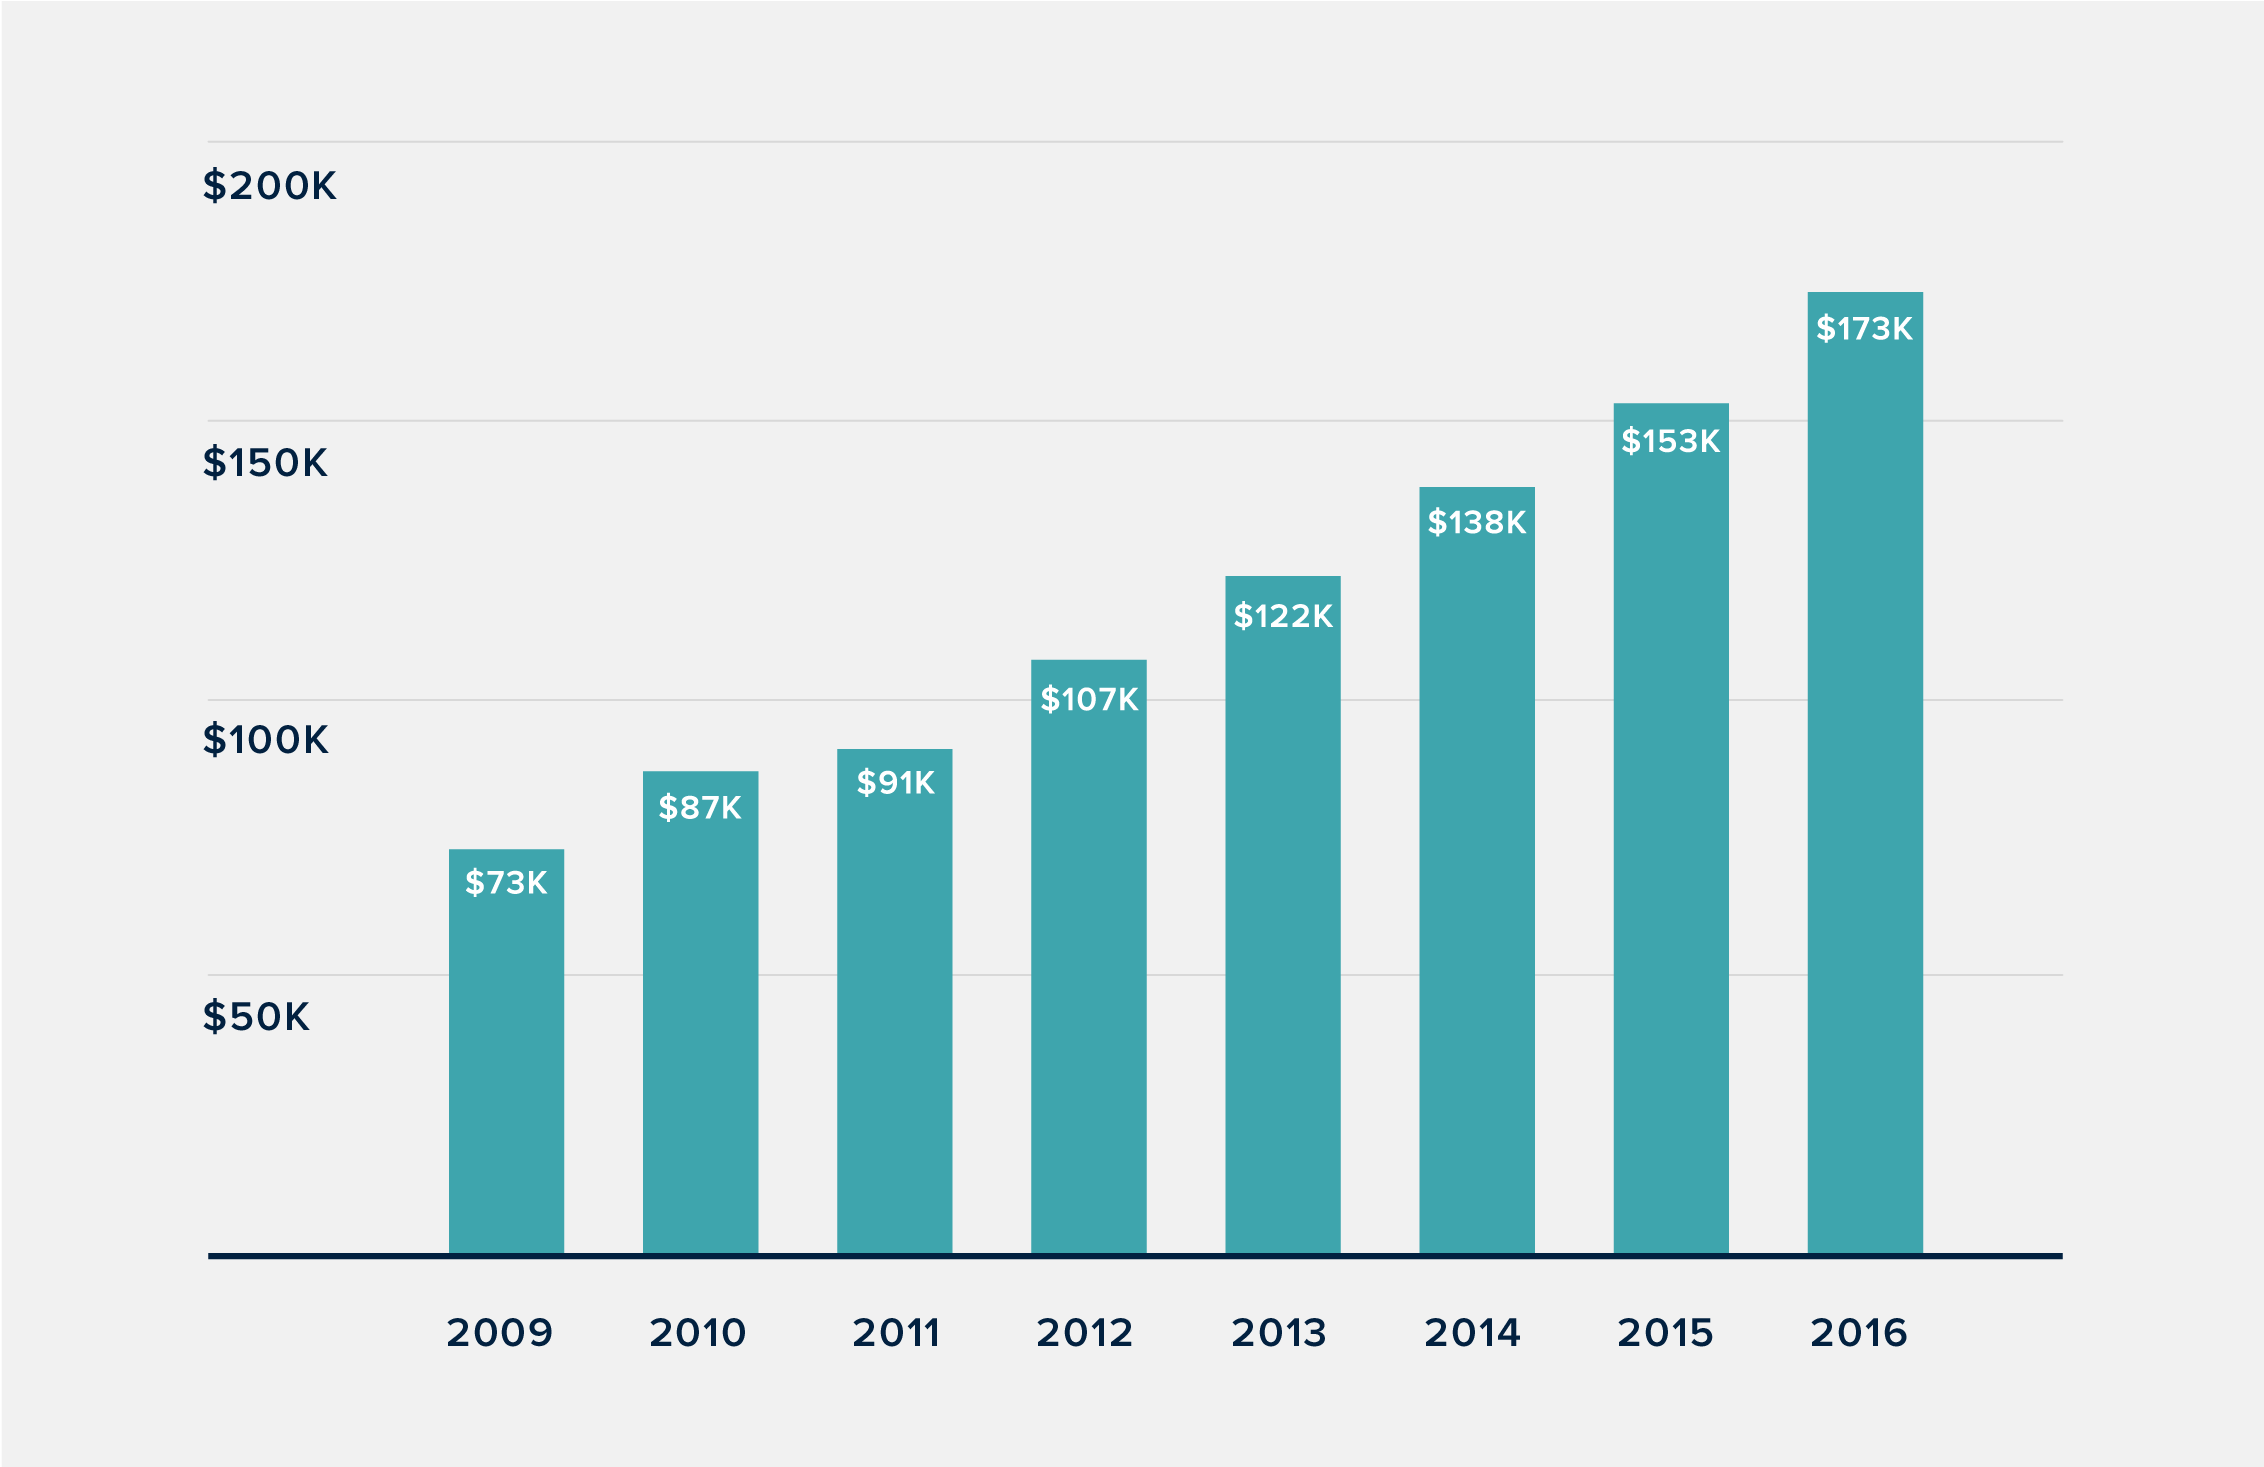 Impressive growth driven by organic investments - Average Sales / Day